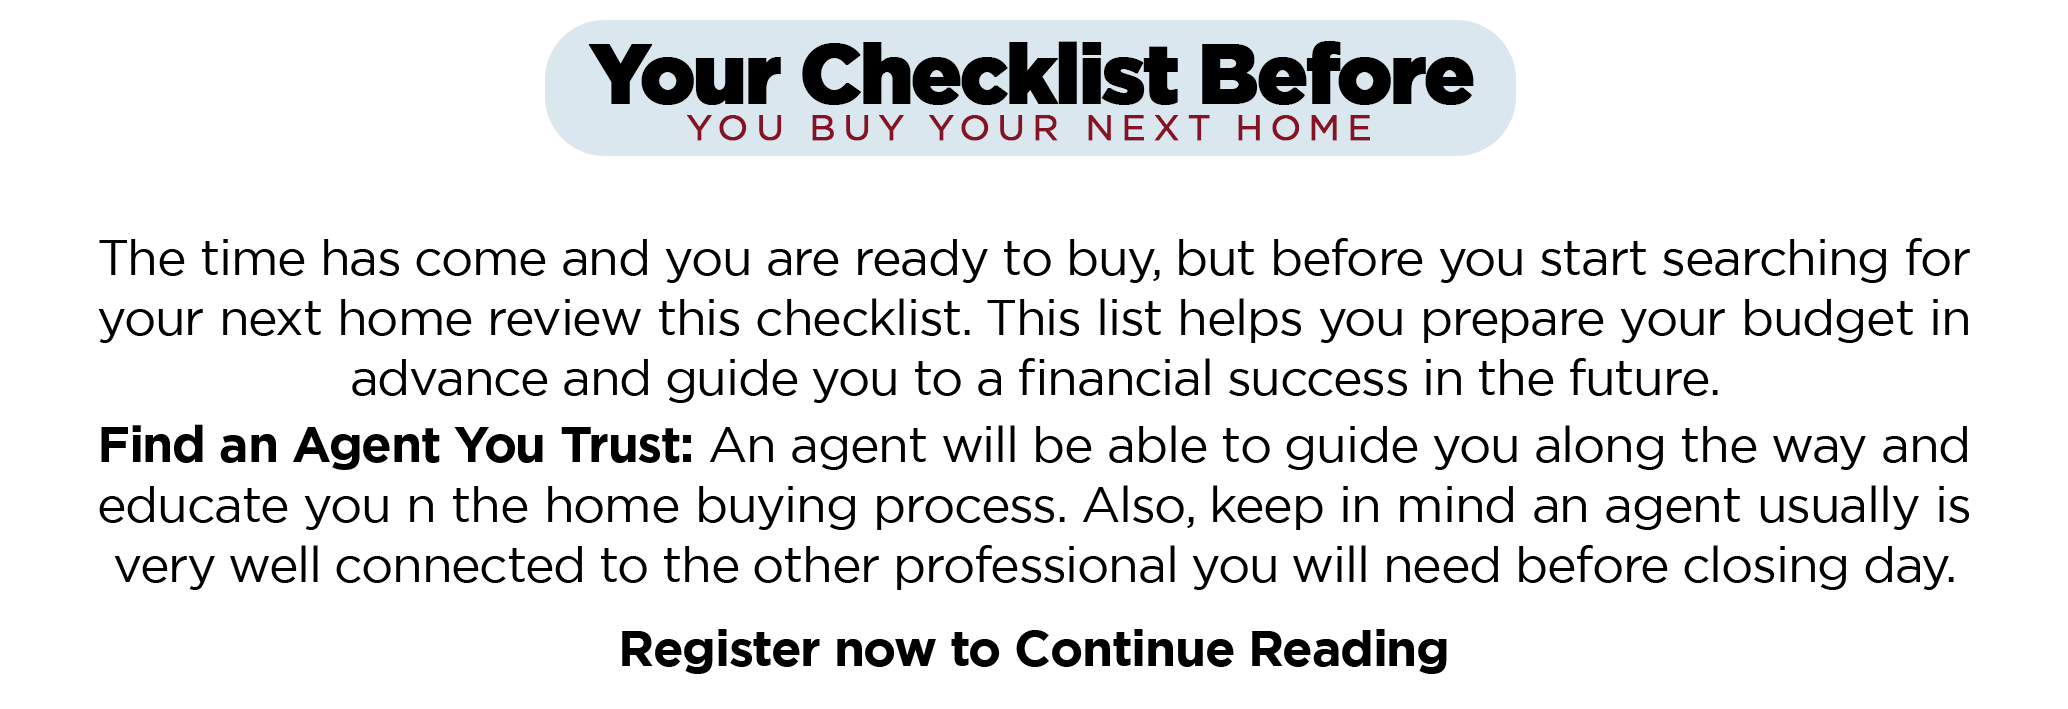 YOUR CHECKLIST TEASER.png